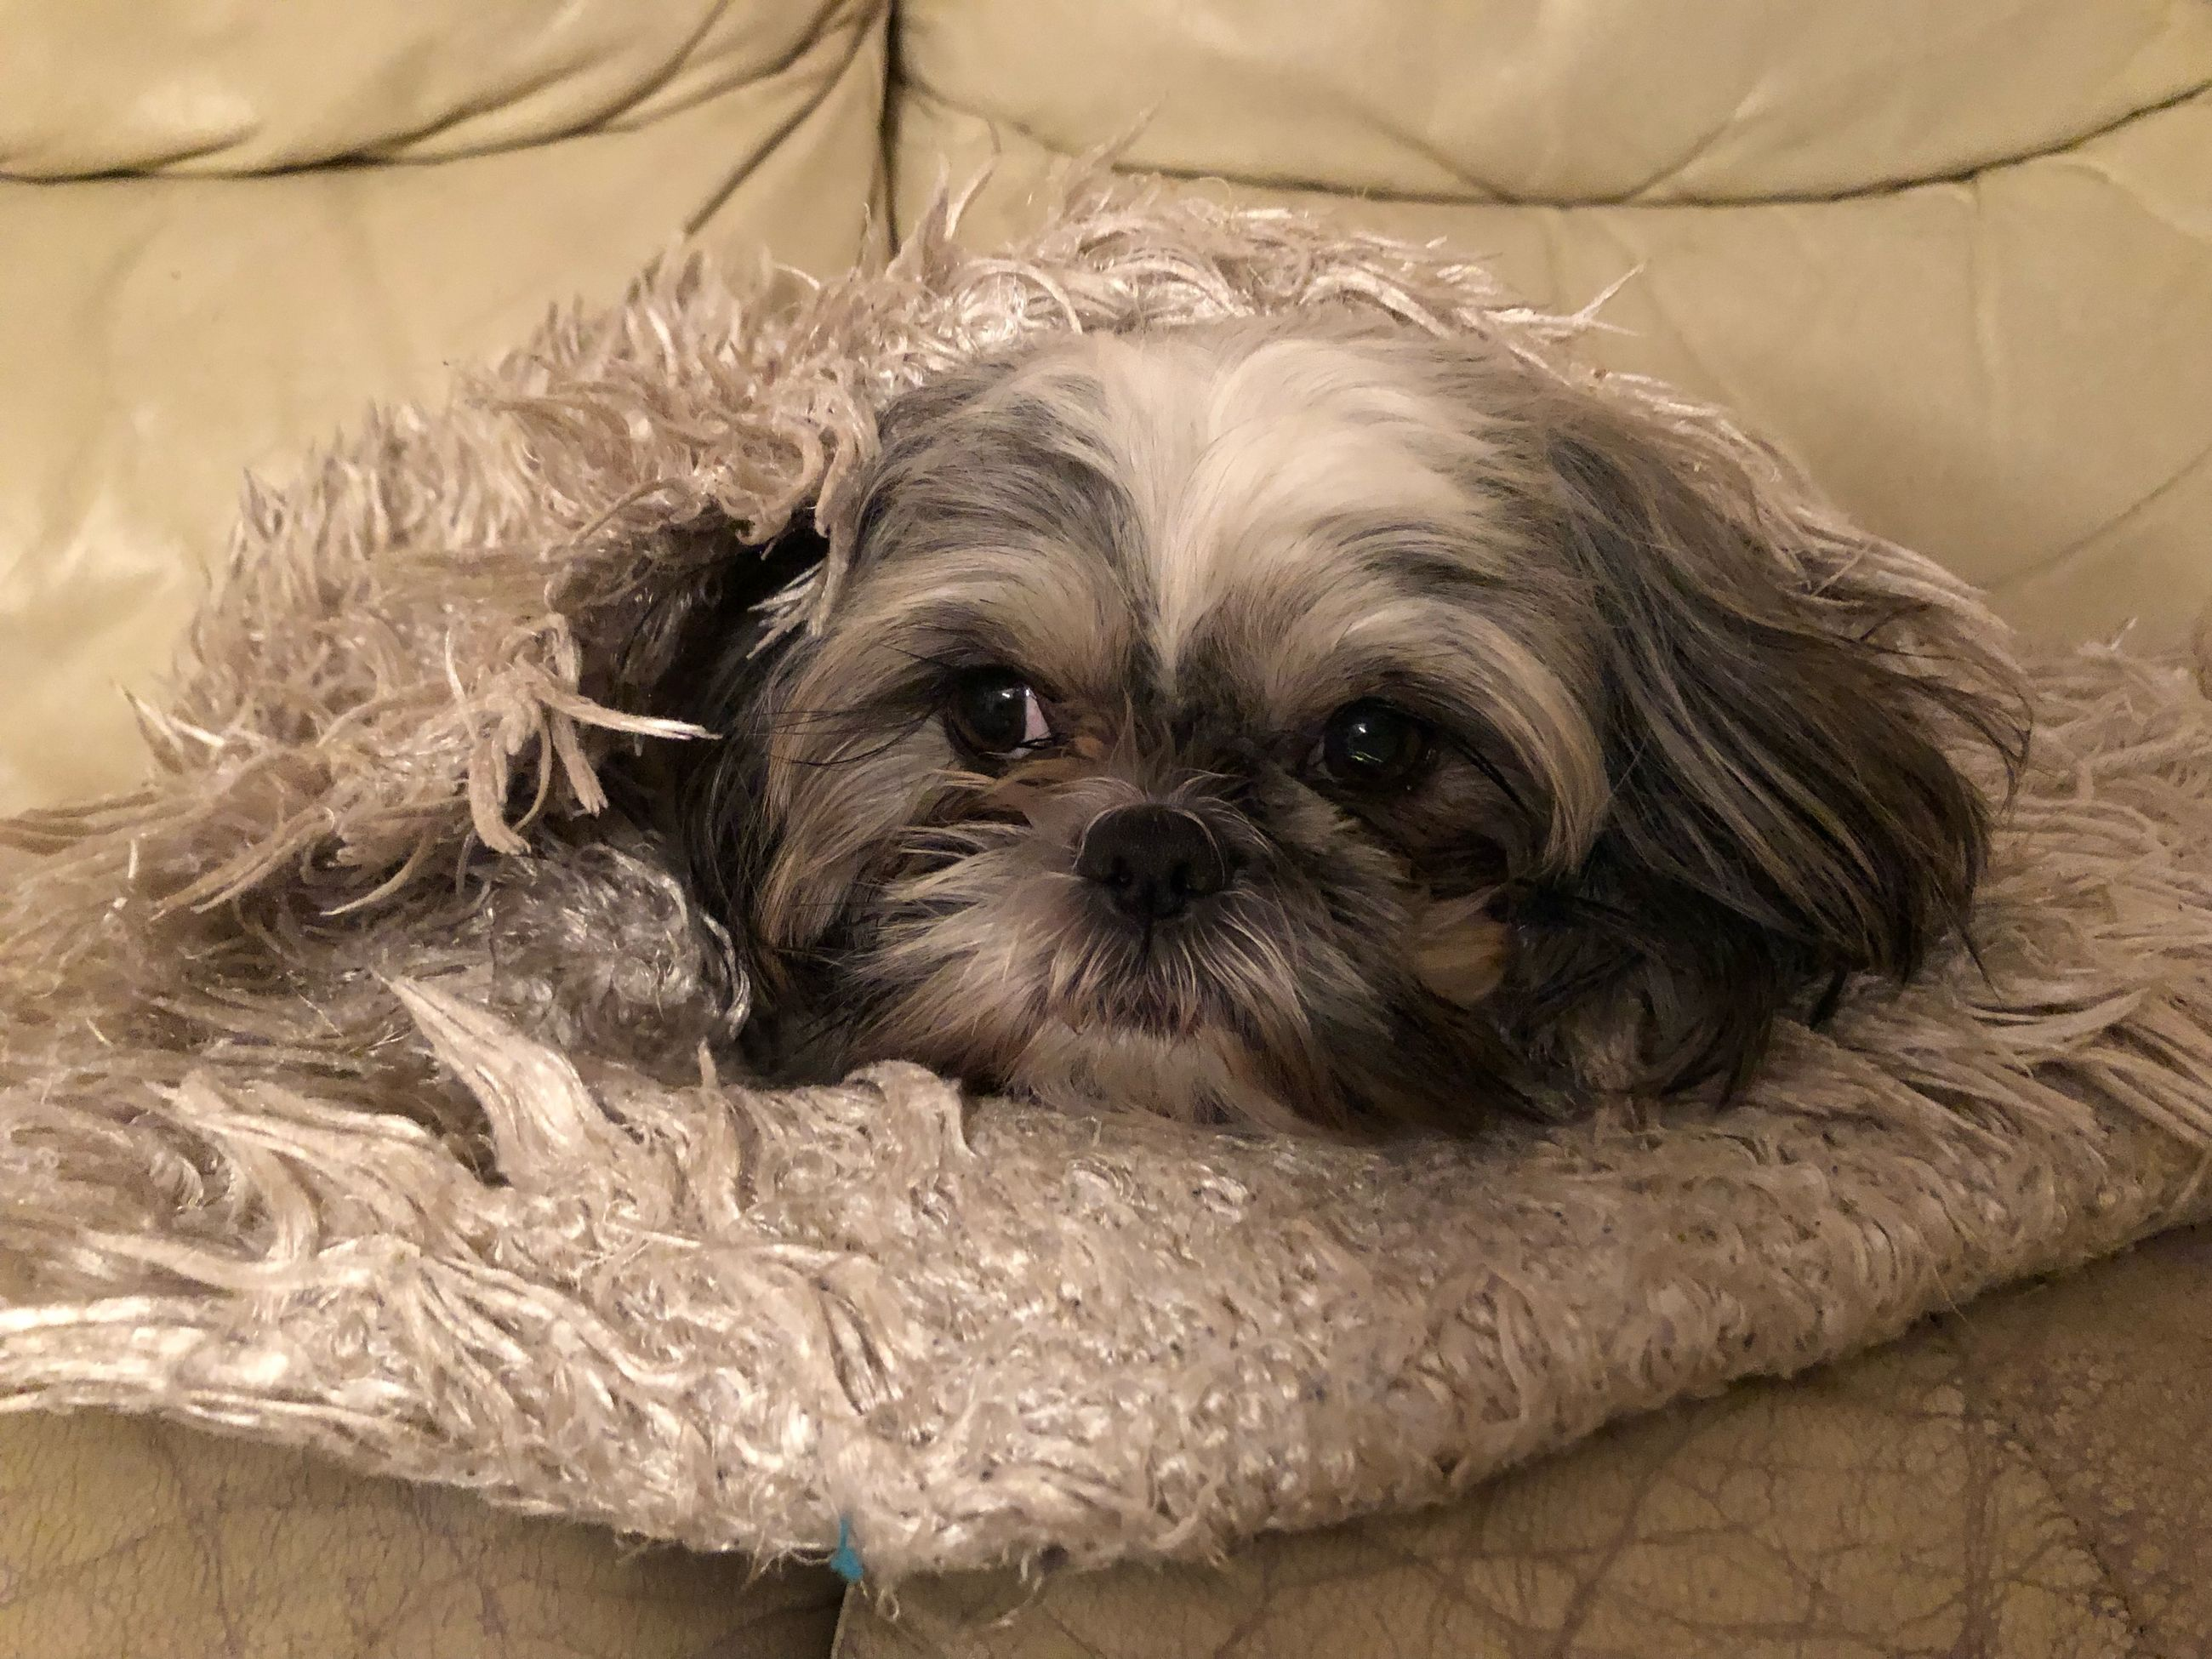 one animal, dog, animal themes, canine, domestic, pets, animal, looking at camera, domestic animals, portrait, relaxation, indoors, mammal, furniture, vertebrate, lap dog, small, no people, lying down, home interior, shih tzu, animal head